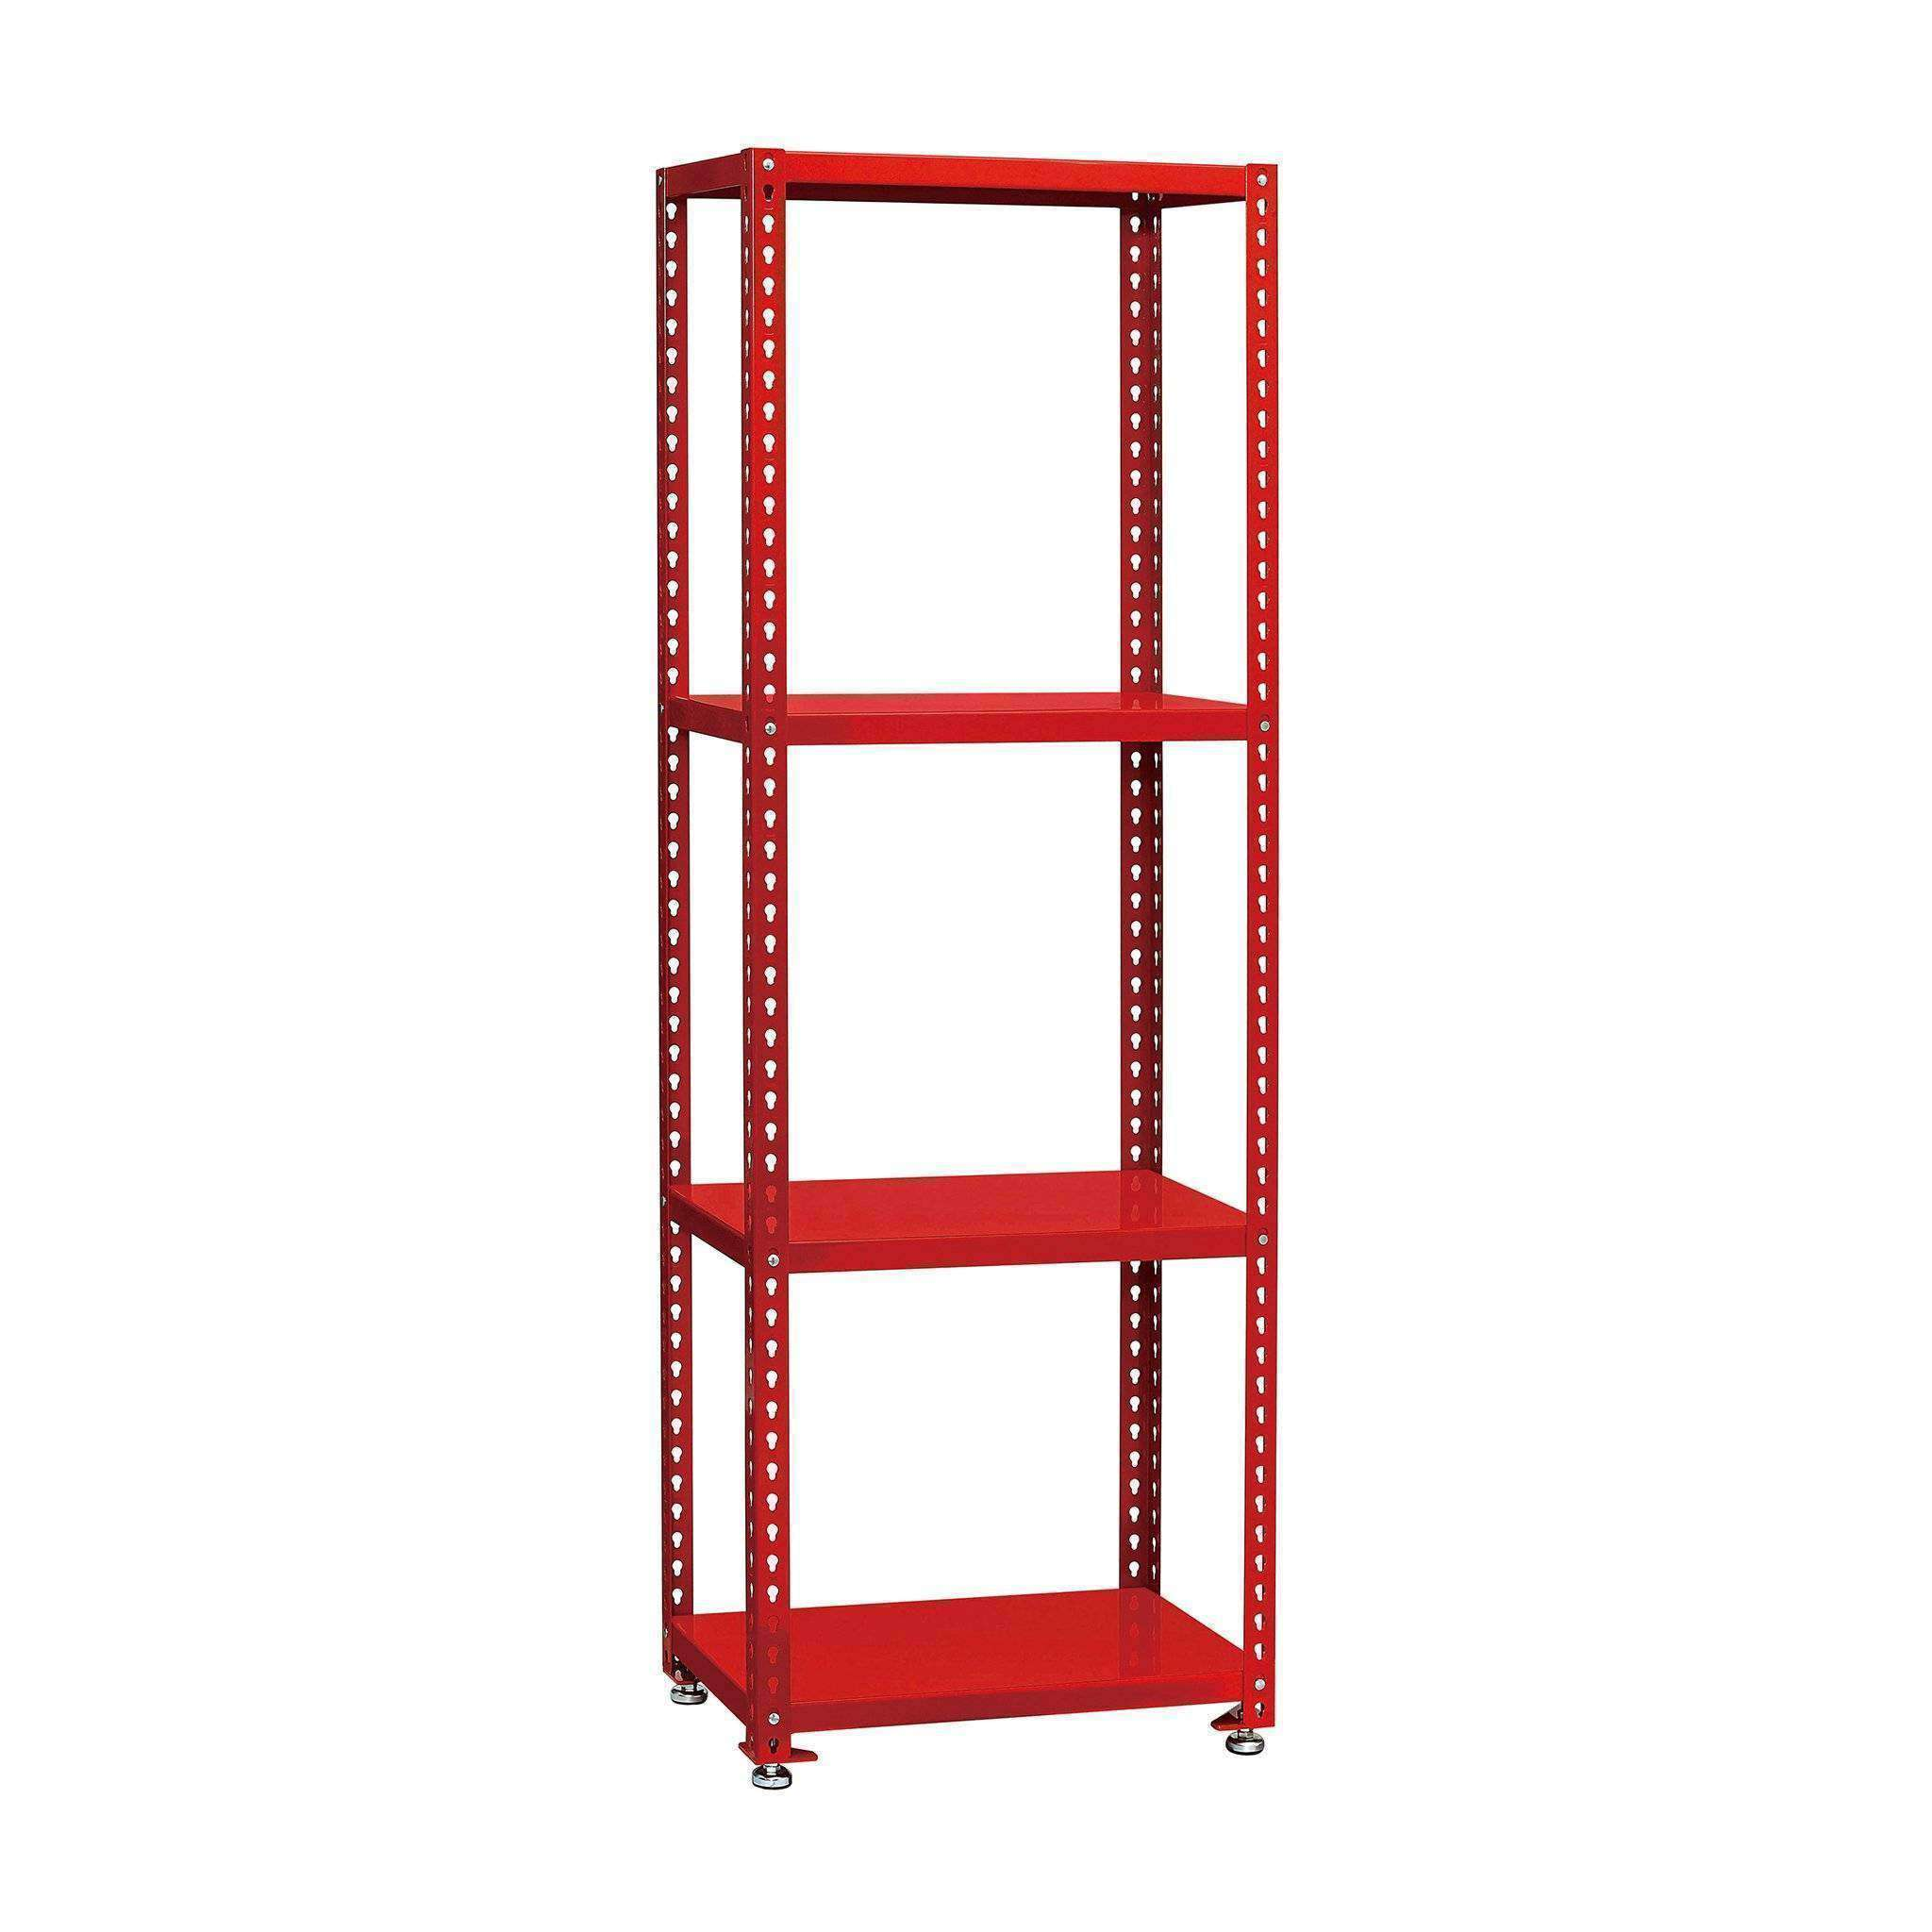 Teng Tools  27.5 Inch / 700mm Wide Modular Racking Module - RSK0700 - Teng Tools USA